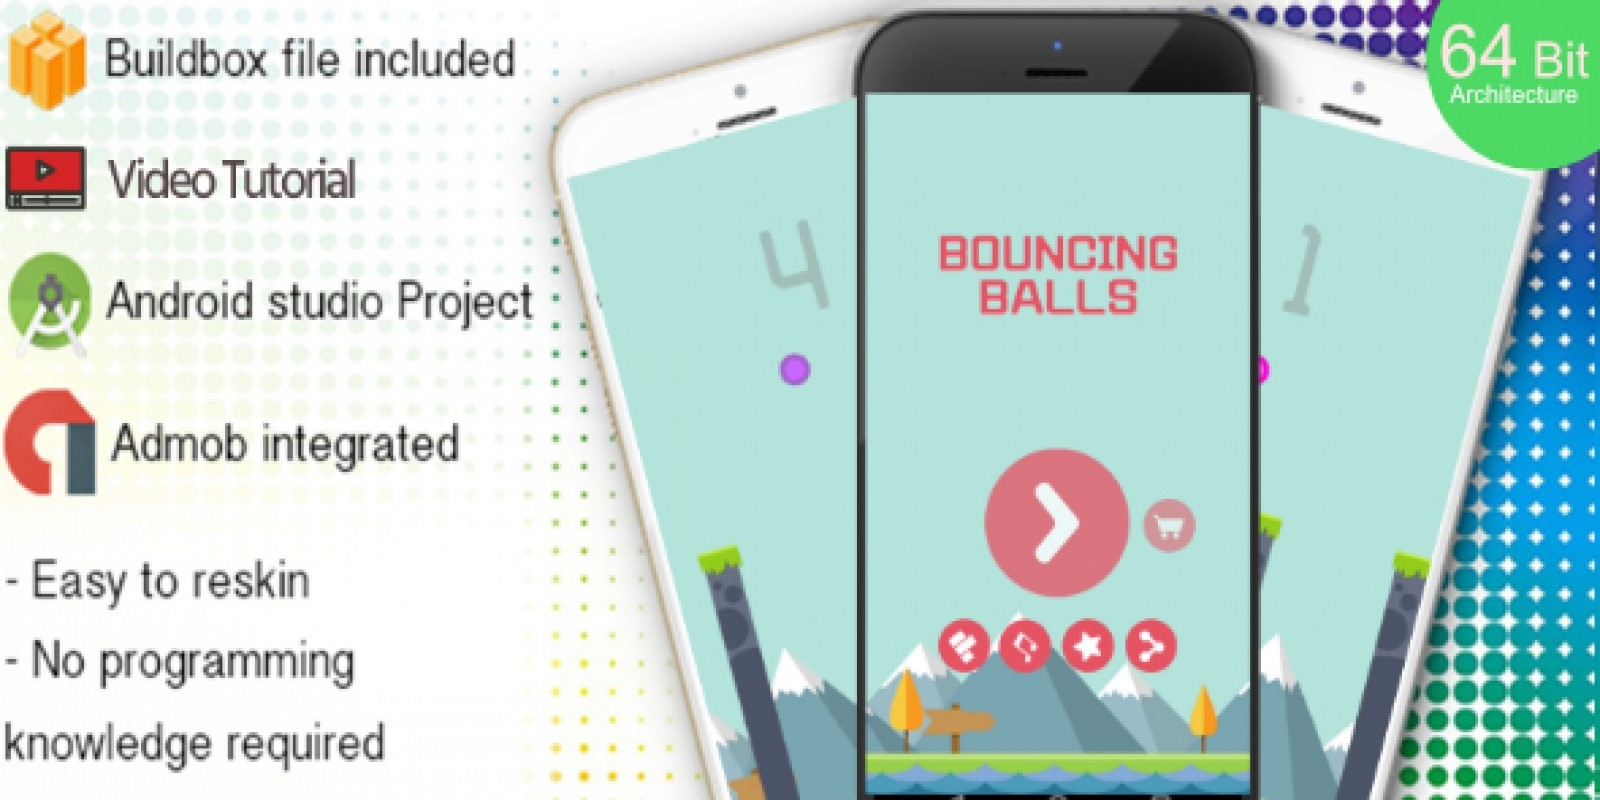 Bouncing Balls Buildbox Template With Admob